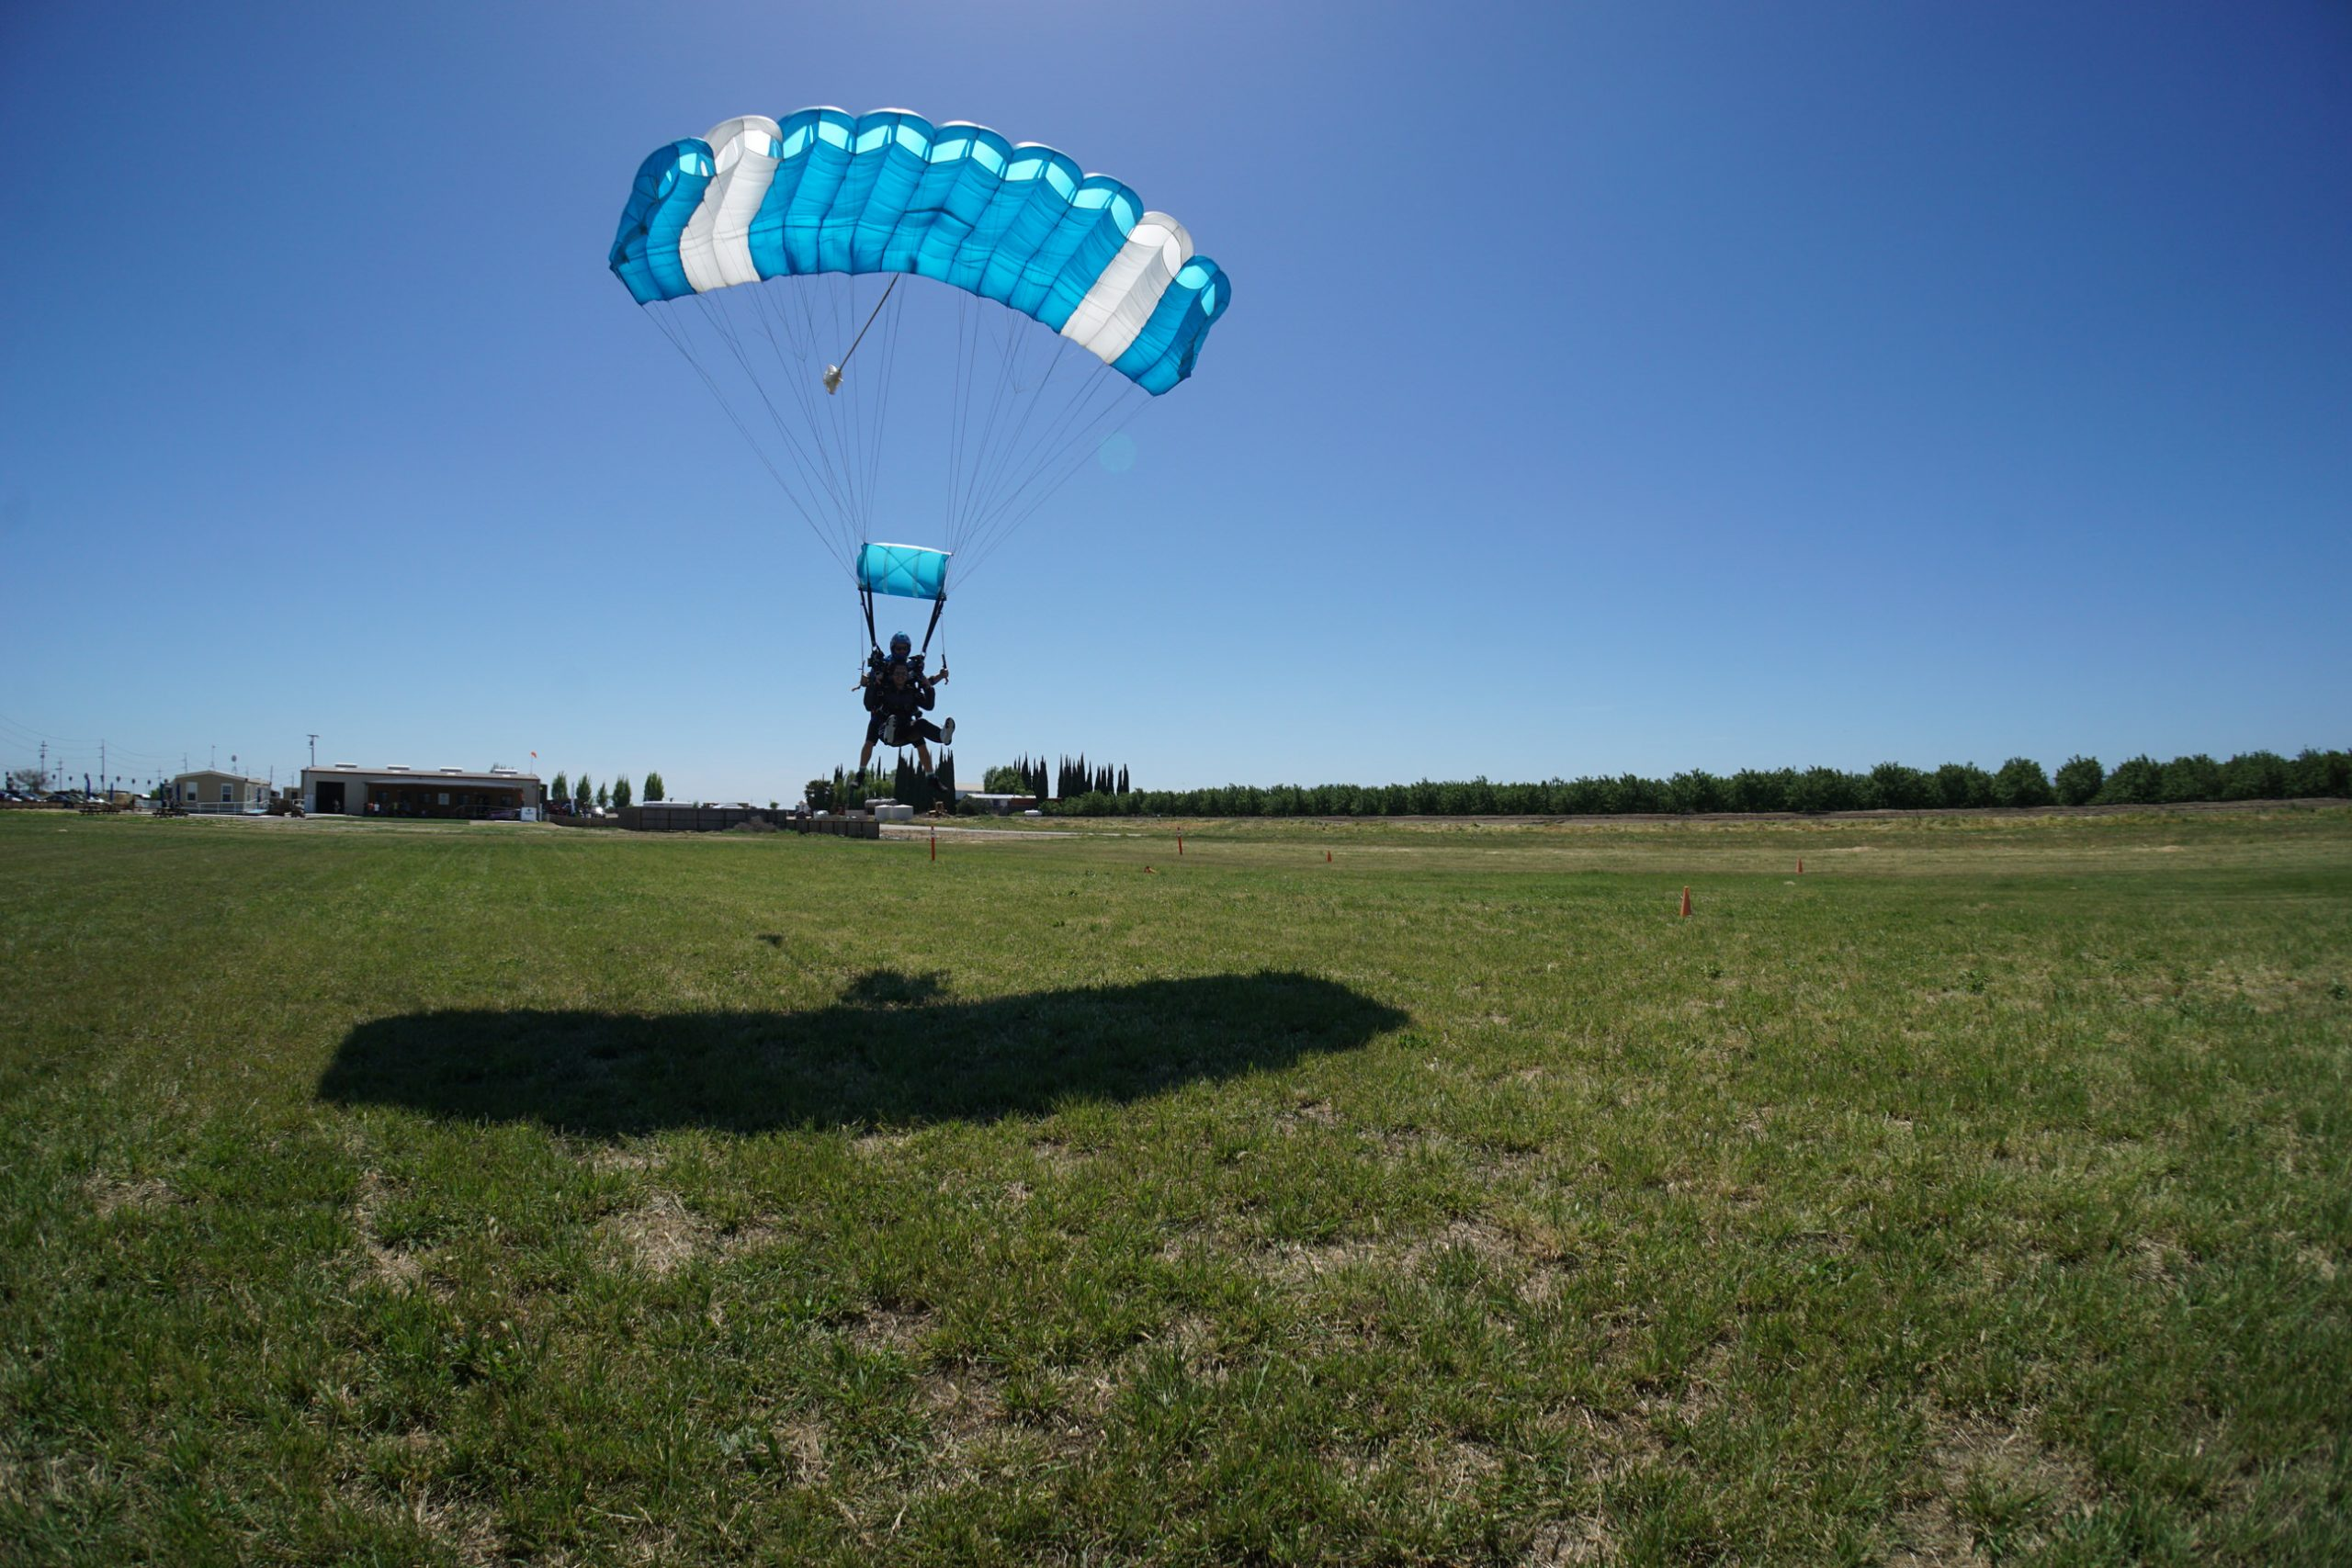 best weather for skydiving skydiving experience description outdoor skydiving